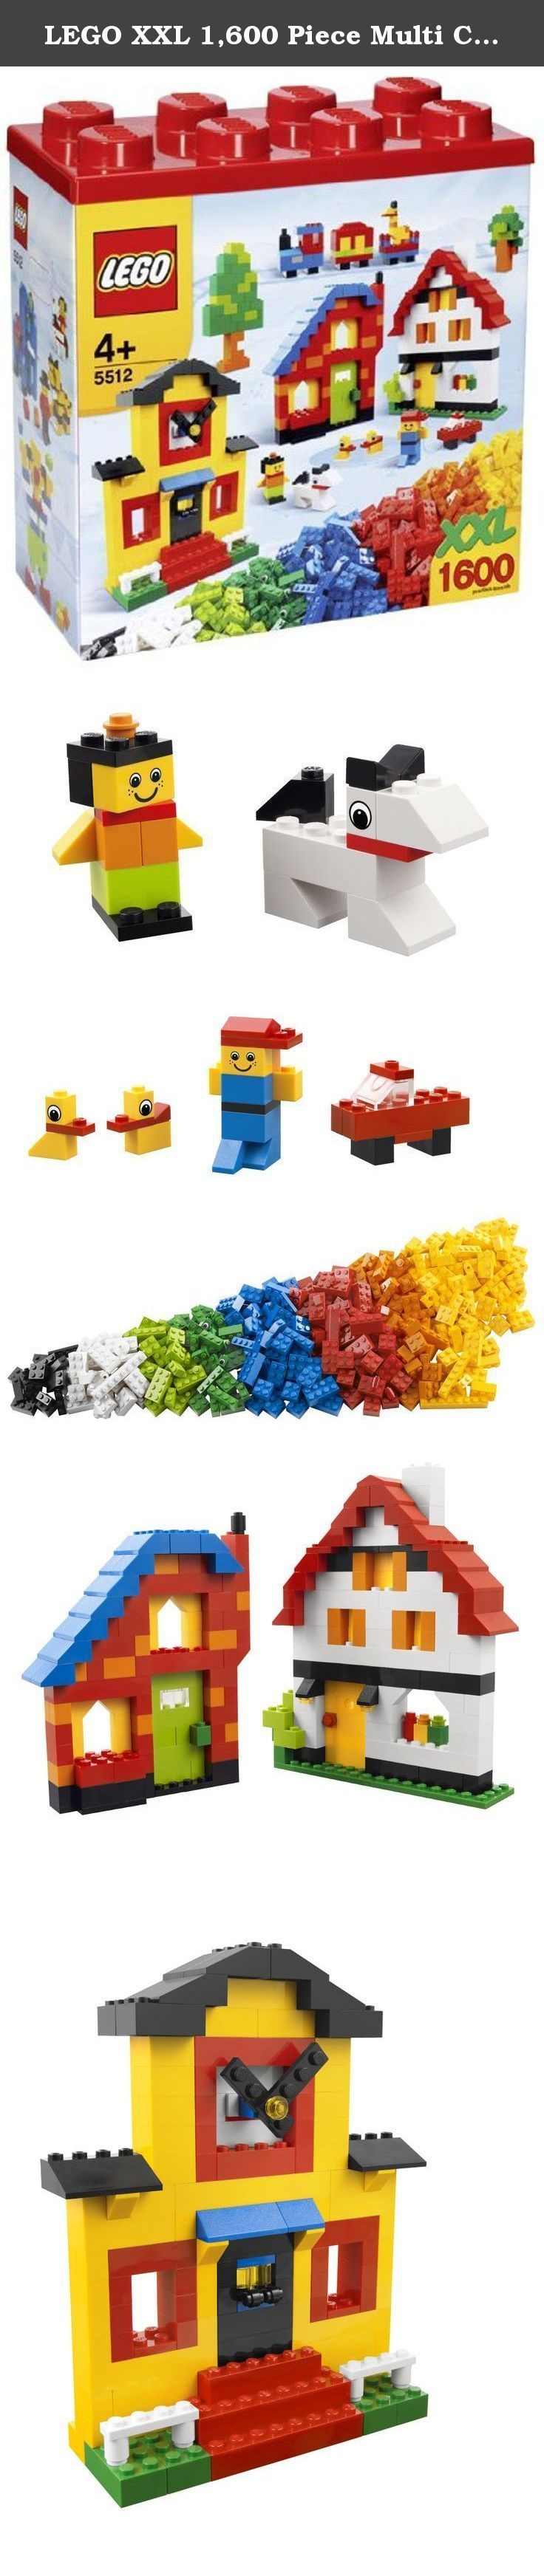 LEGO XXL 1,600 Piece Multi Colored Building Block Set Style 5512. Contains 1,600 pieces, for ages 4+.